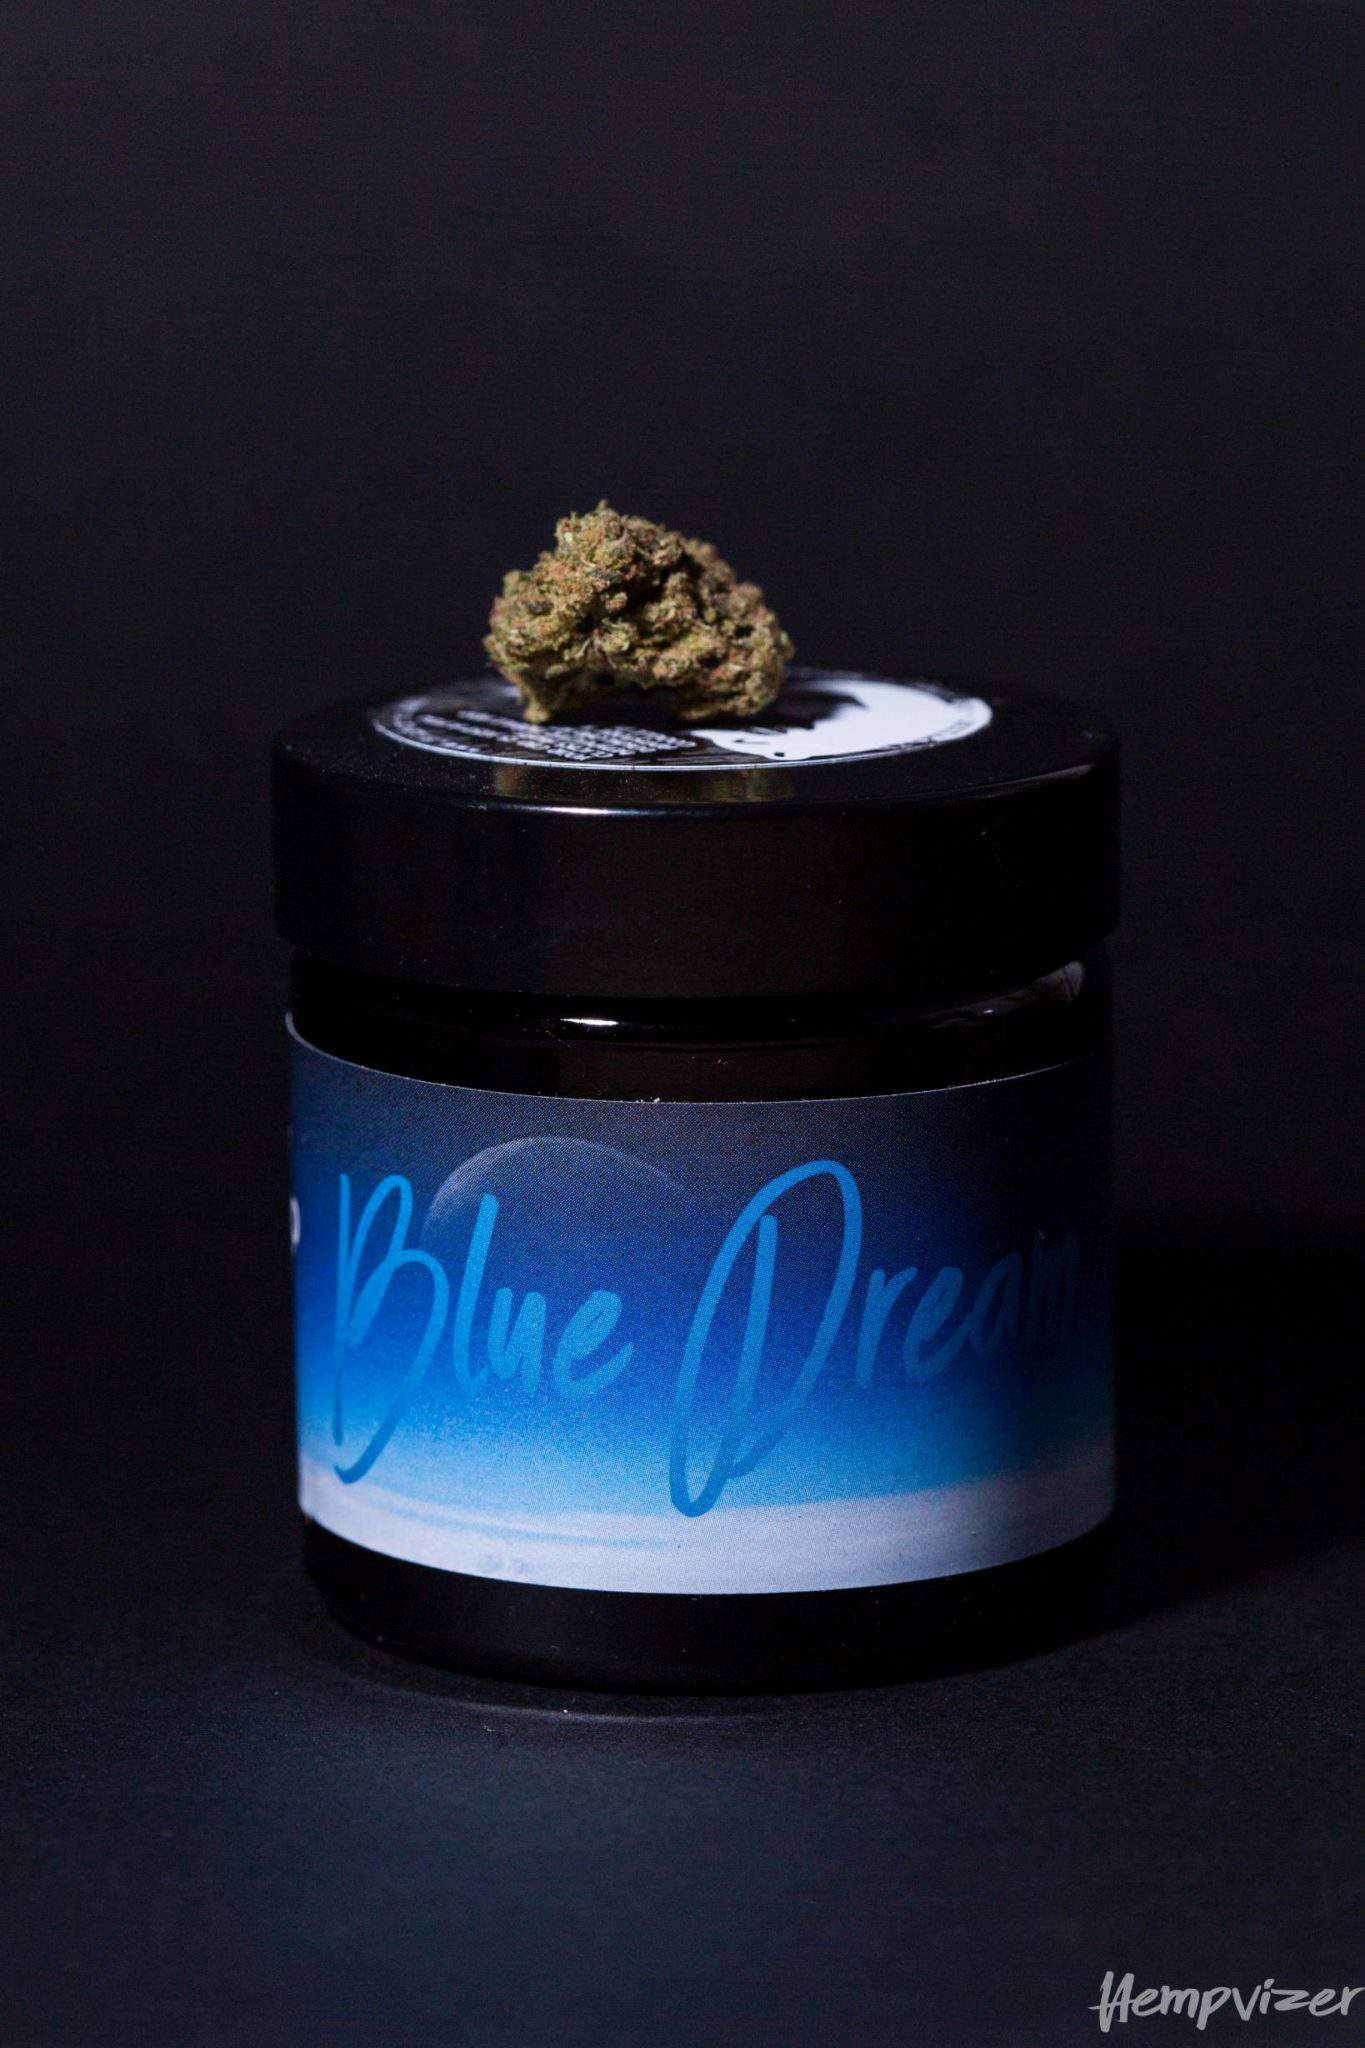 Fiori CBD Blue Dream 9% CBD